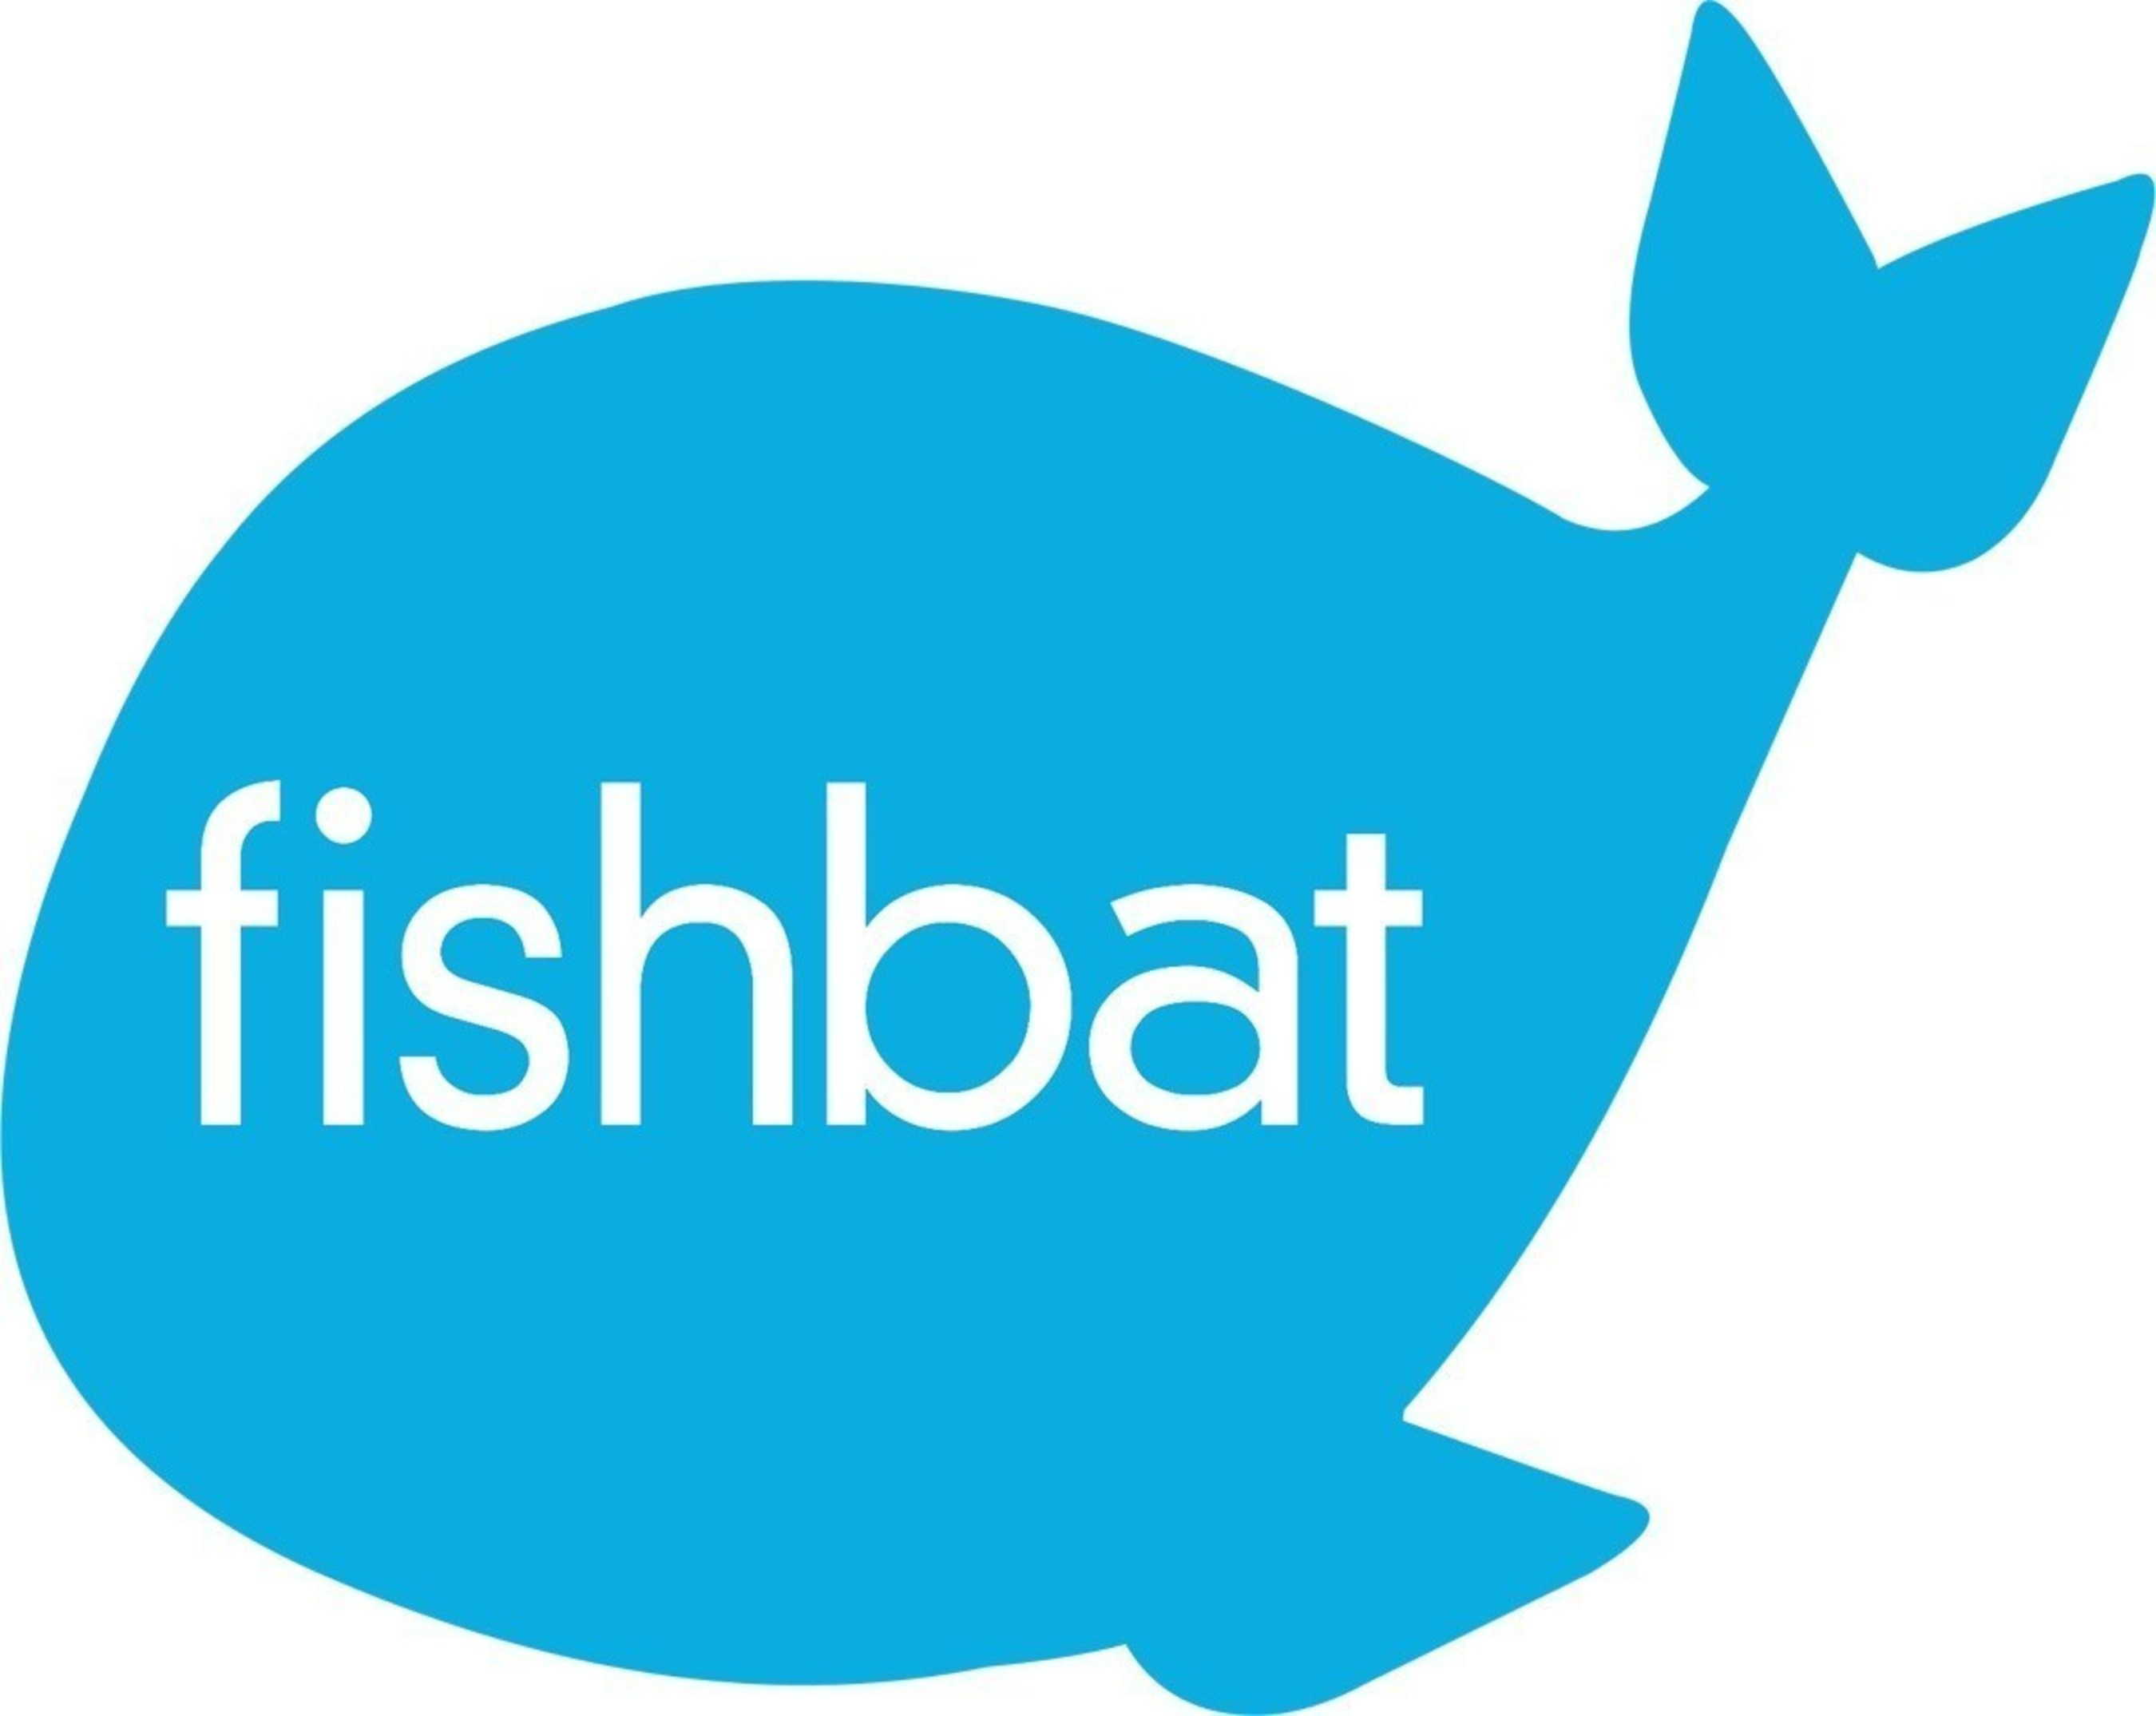 fishbat CEO Clay Darrohn Discusses 5 Features of Twitter Advanced Search That Can Help Your Social Media Strategy